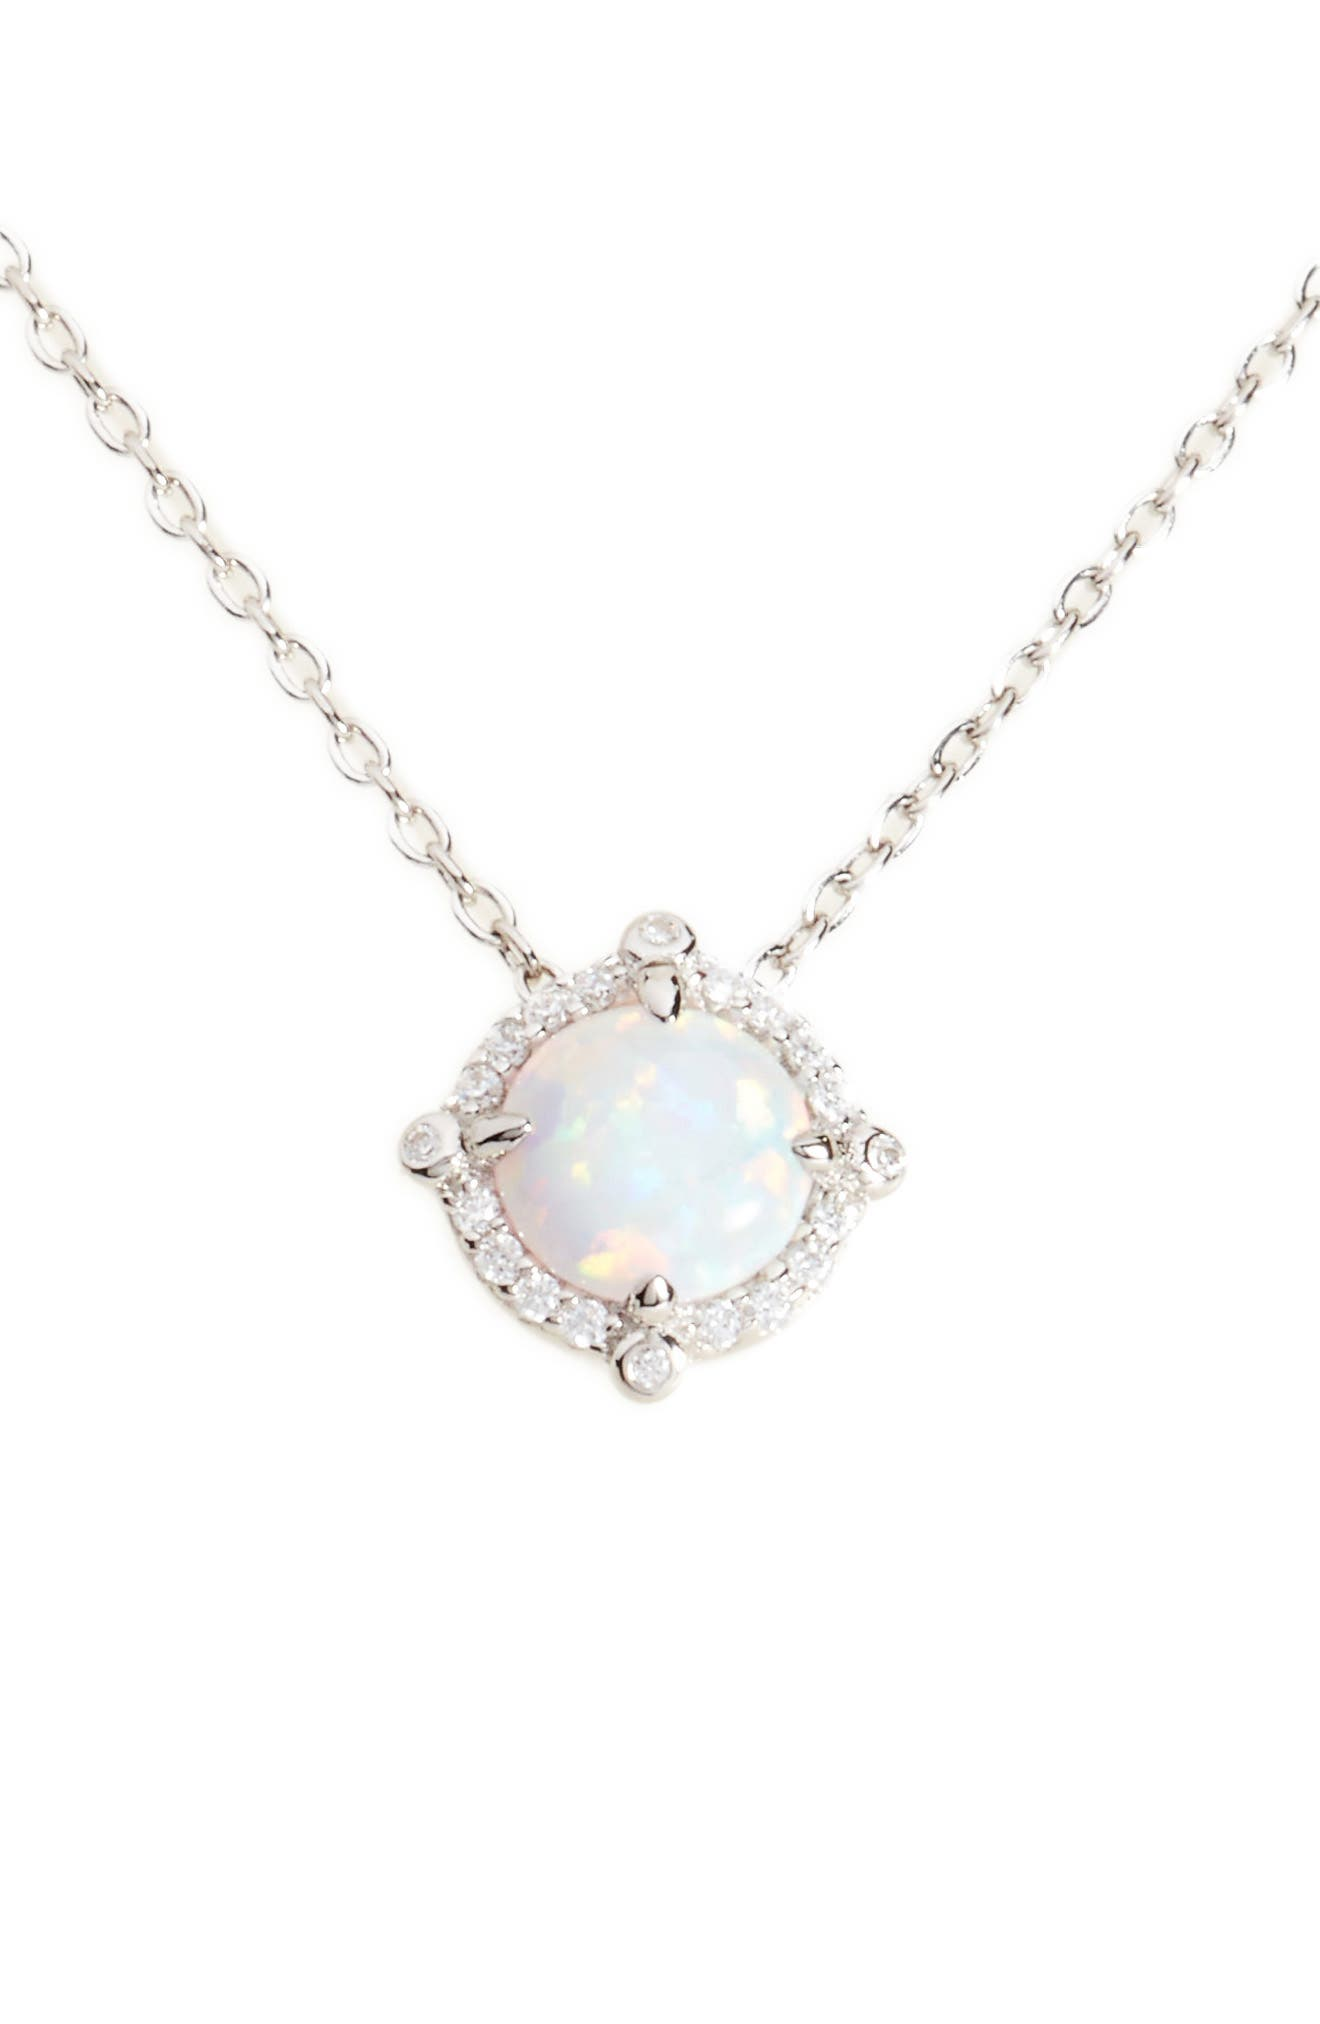 Simulated Diamond & Opal Necklace,                         Main,                         color, SILVER/ OPAL/ CLEAR